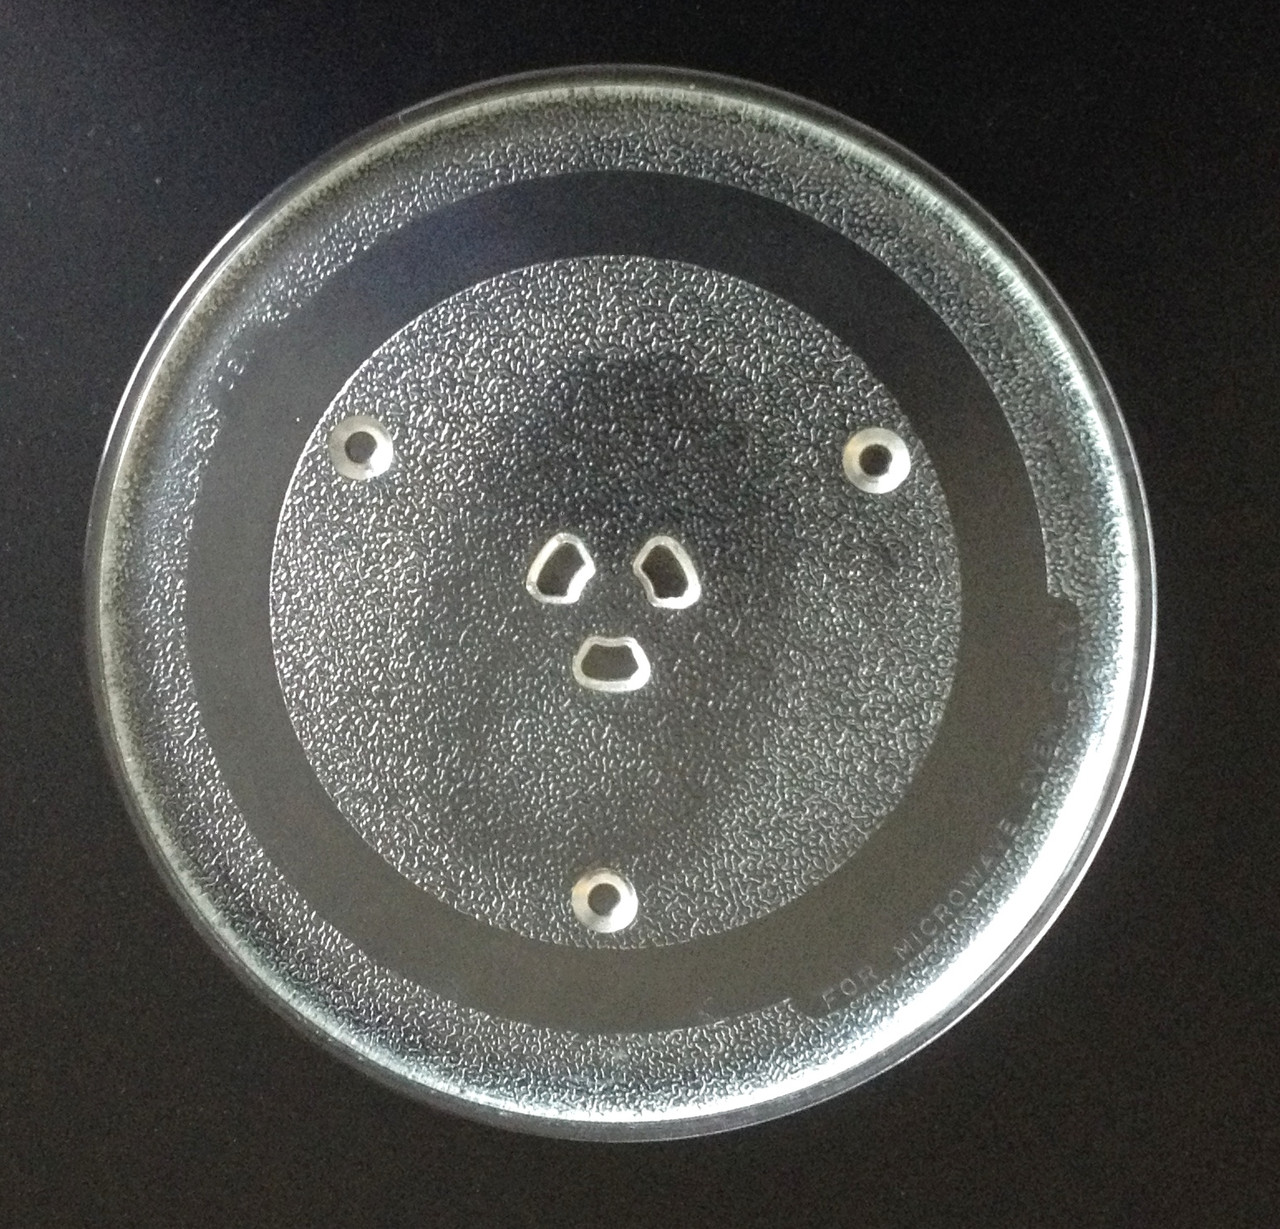 ge microwave glass turntable plate tray 10 5 8 wb48x21336